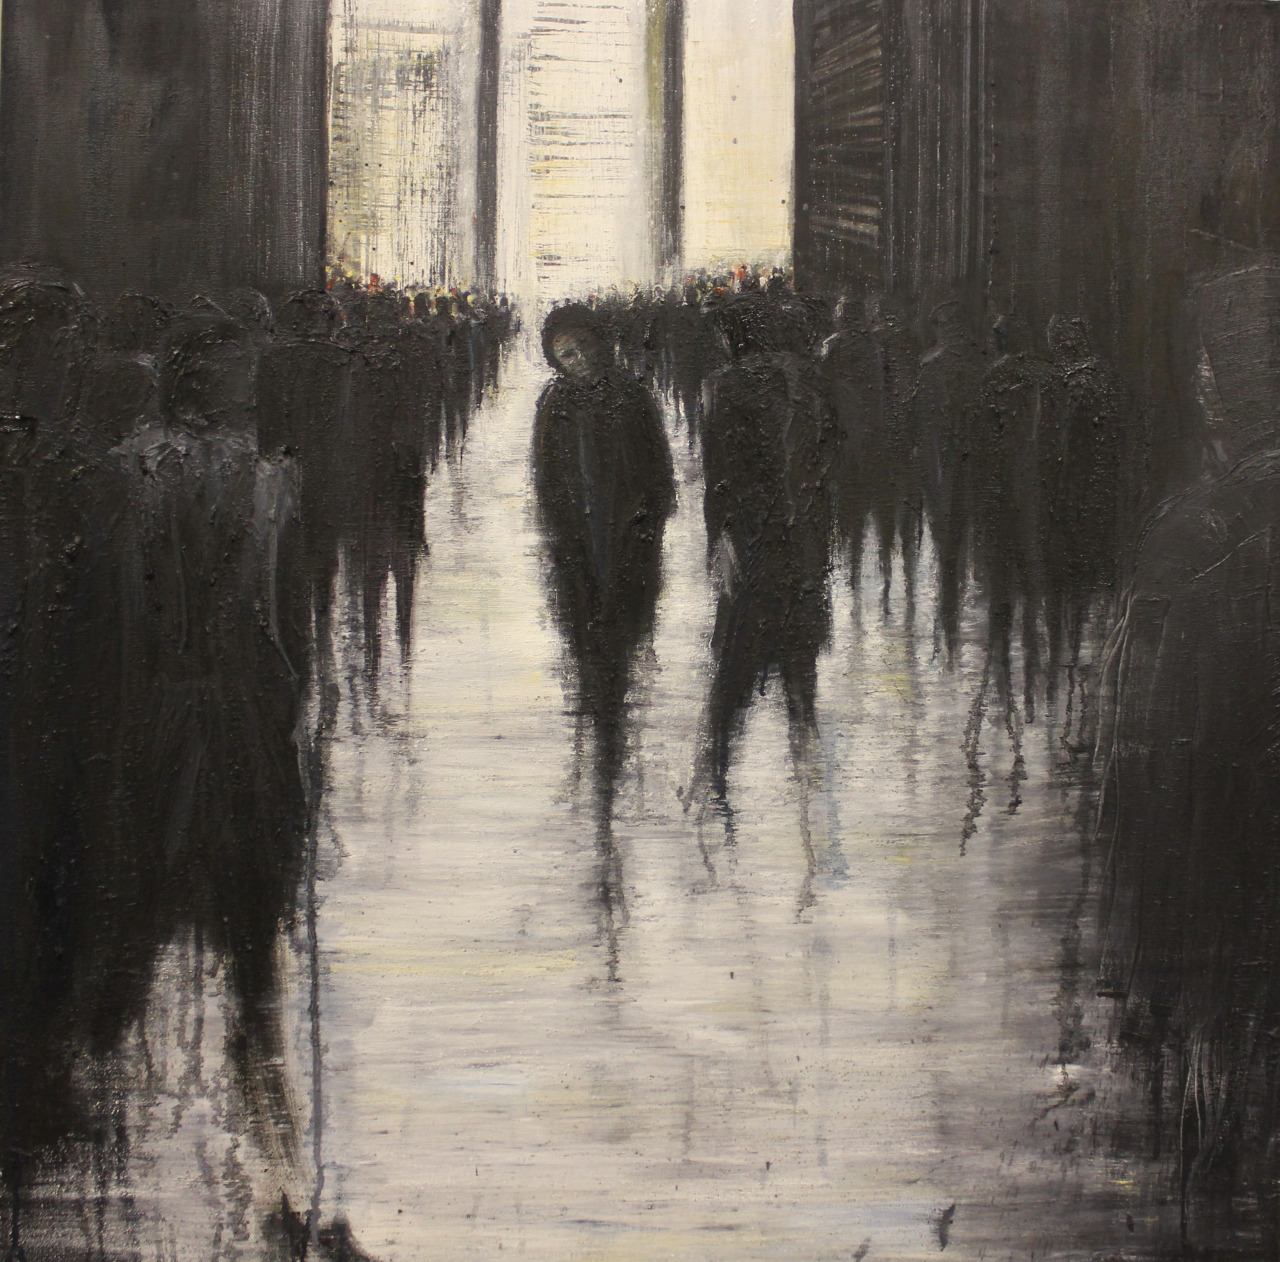 tumblropenarts:  Looking Back, oil on canvas, 90x90cm, 2012 Lesley Oldaker   http://oldaker-art.tumblr.com